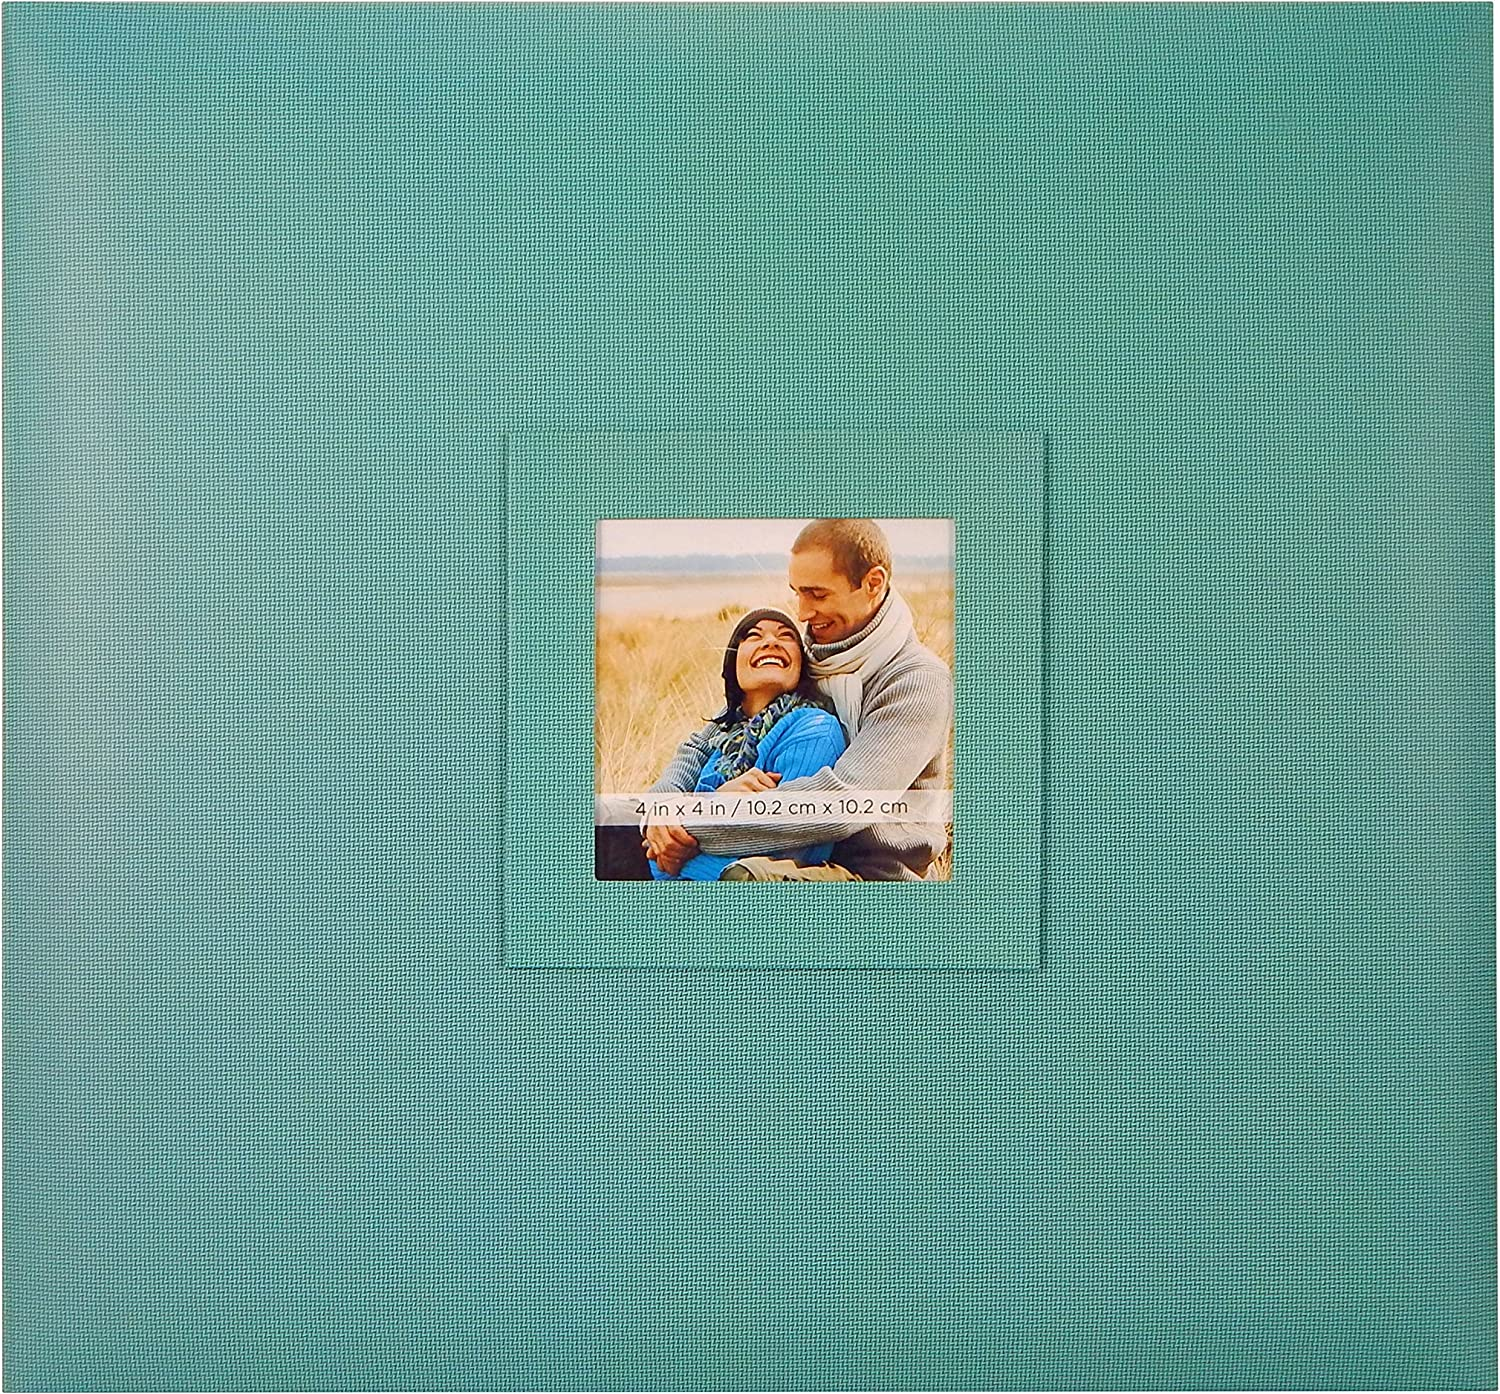 MCS MBI 13.5x12.5 Inch Earthtones Collection Scrapbook Album with 12x12 Inch Pages and Photo Opening, Blueberry (860099)